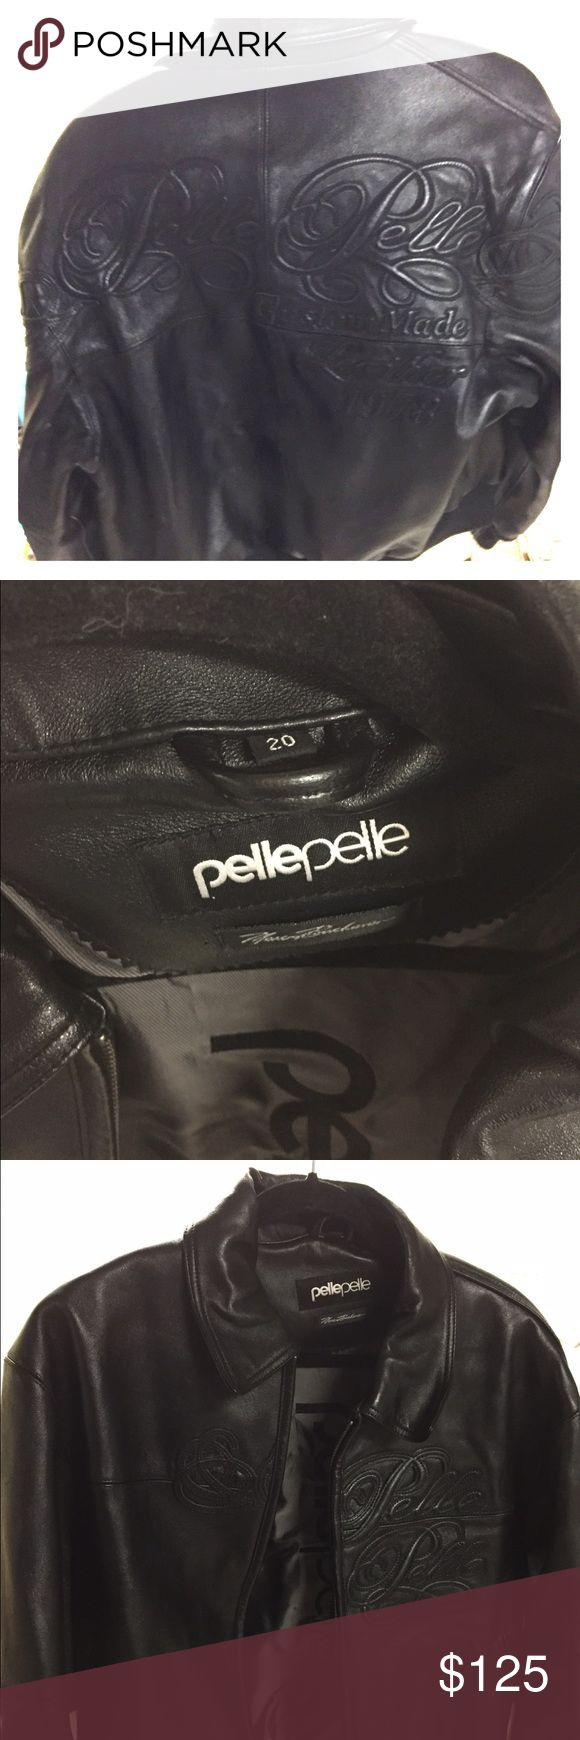 Pelle pelle leather jacket Mint heavy duty pelle pelle heavy duty leather jacket. Size 20 pelle pelle Jackets & Coats Puffers